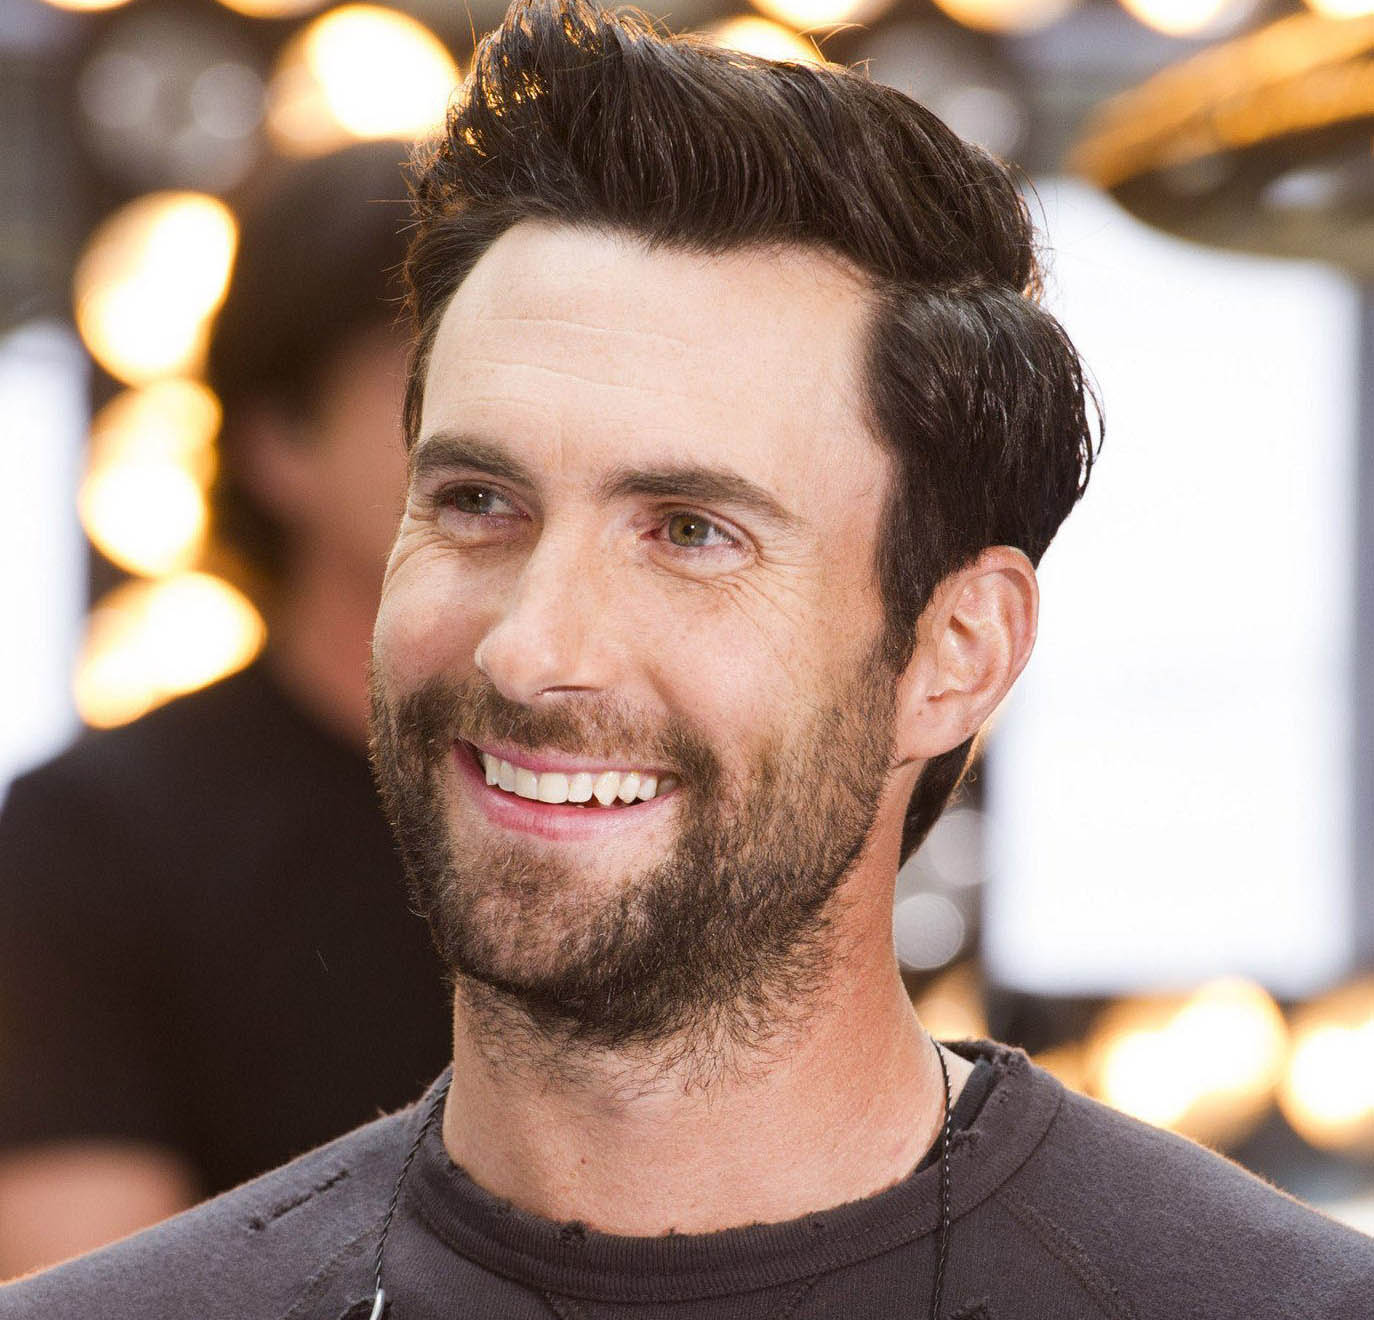 Adam Levine Short Haircut 2019